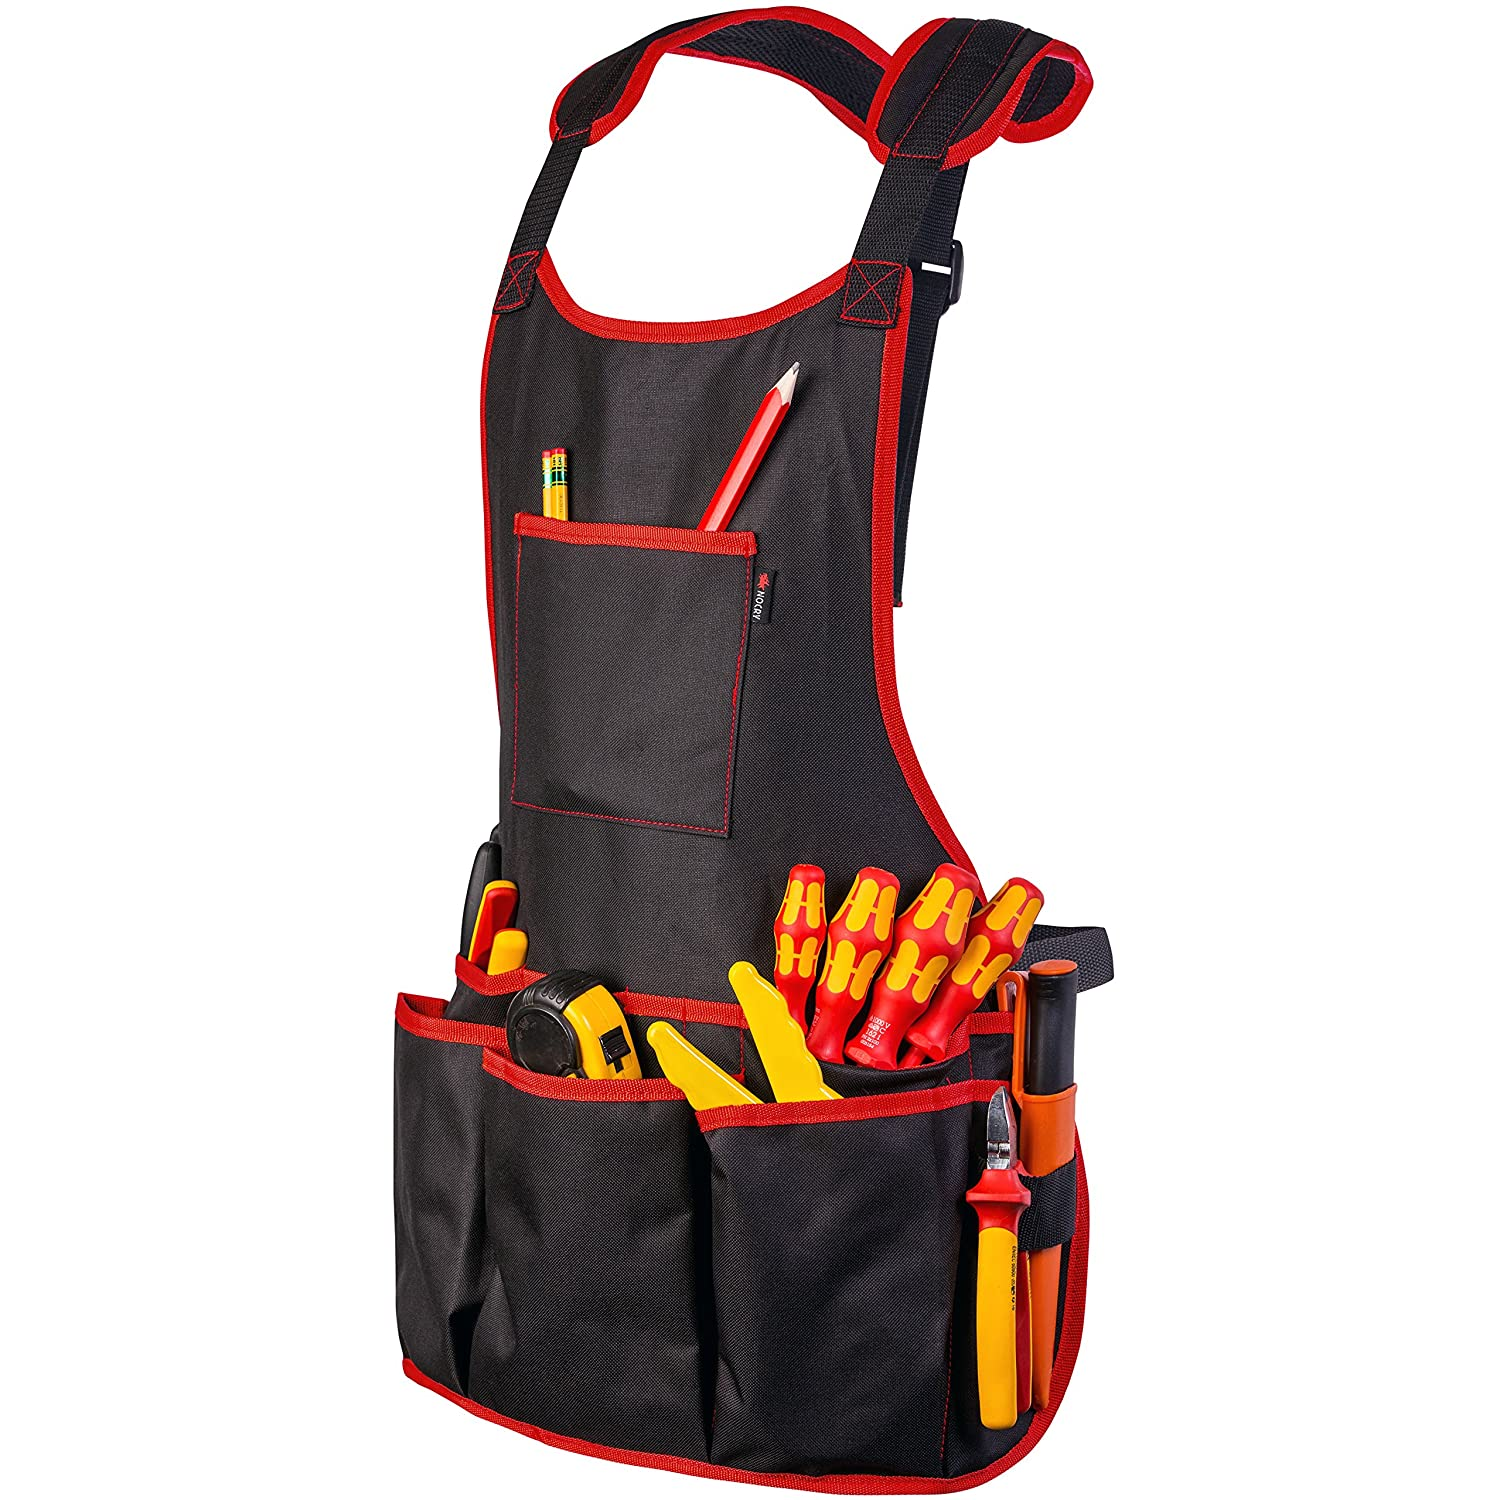 NoCry Professional Canvas Work Apron with 16 Tool Pockets Fully Adjustable Waterproof Protective Black